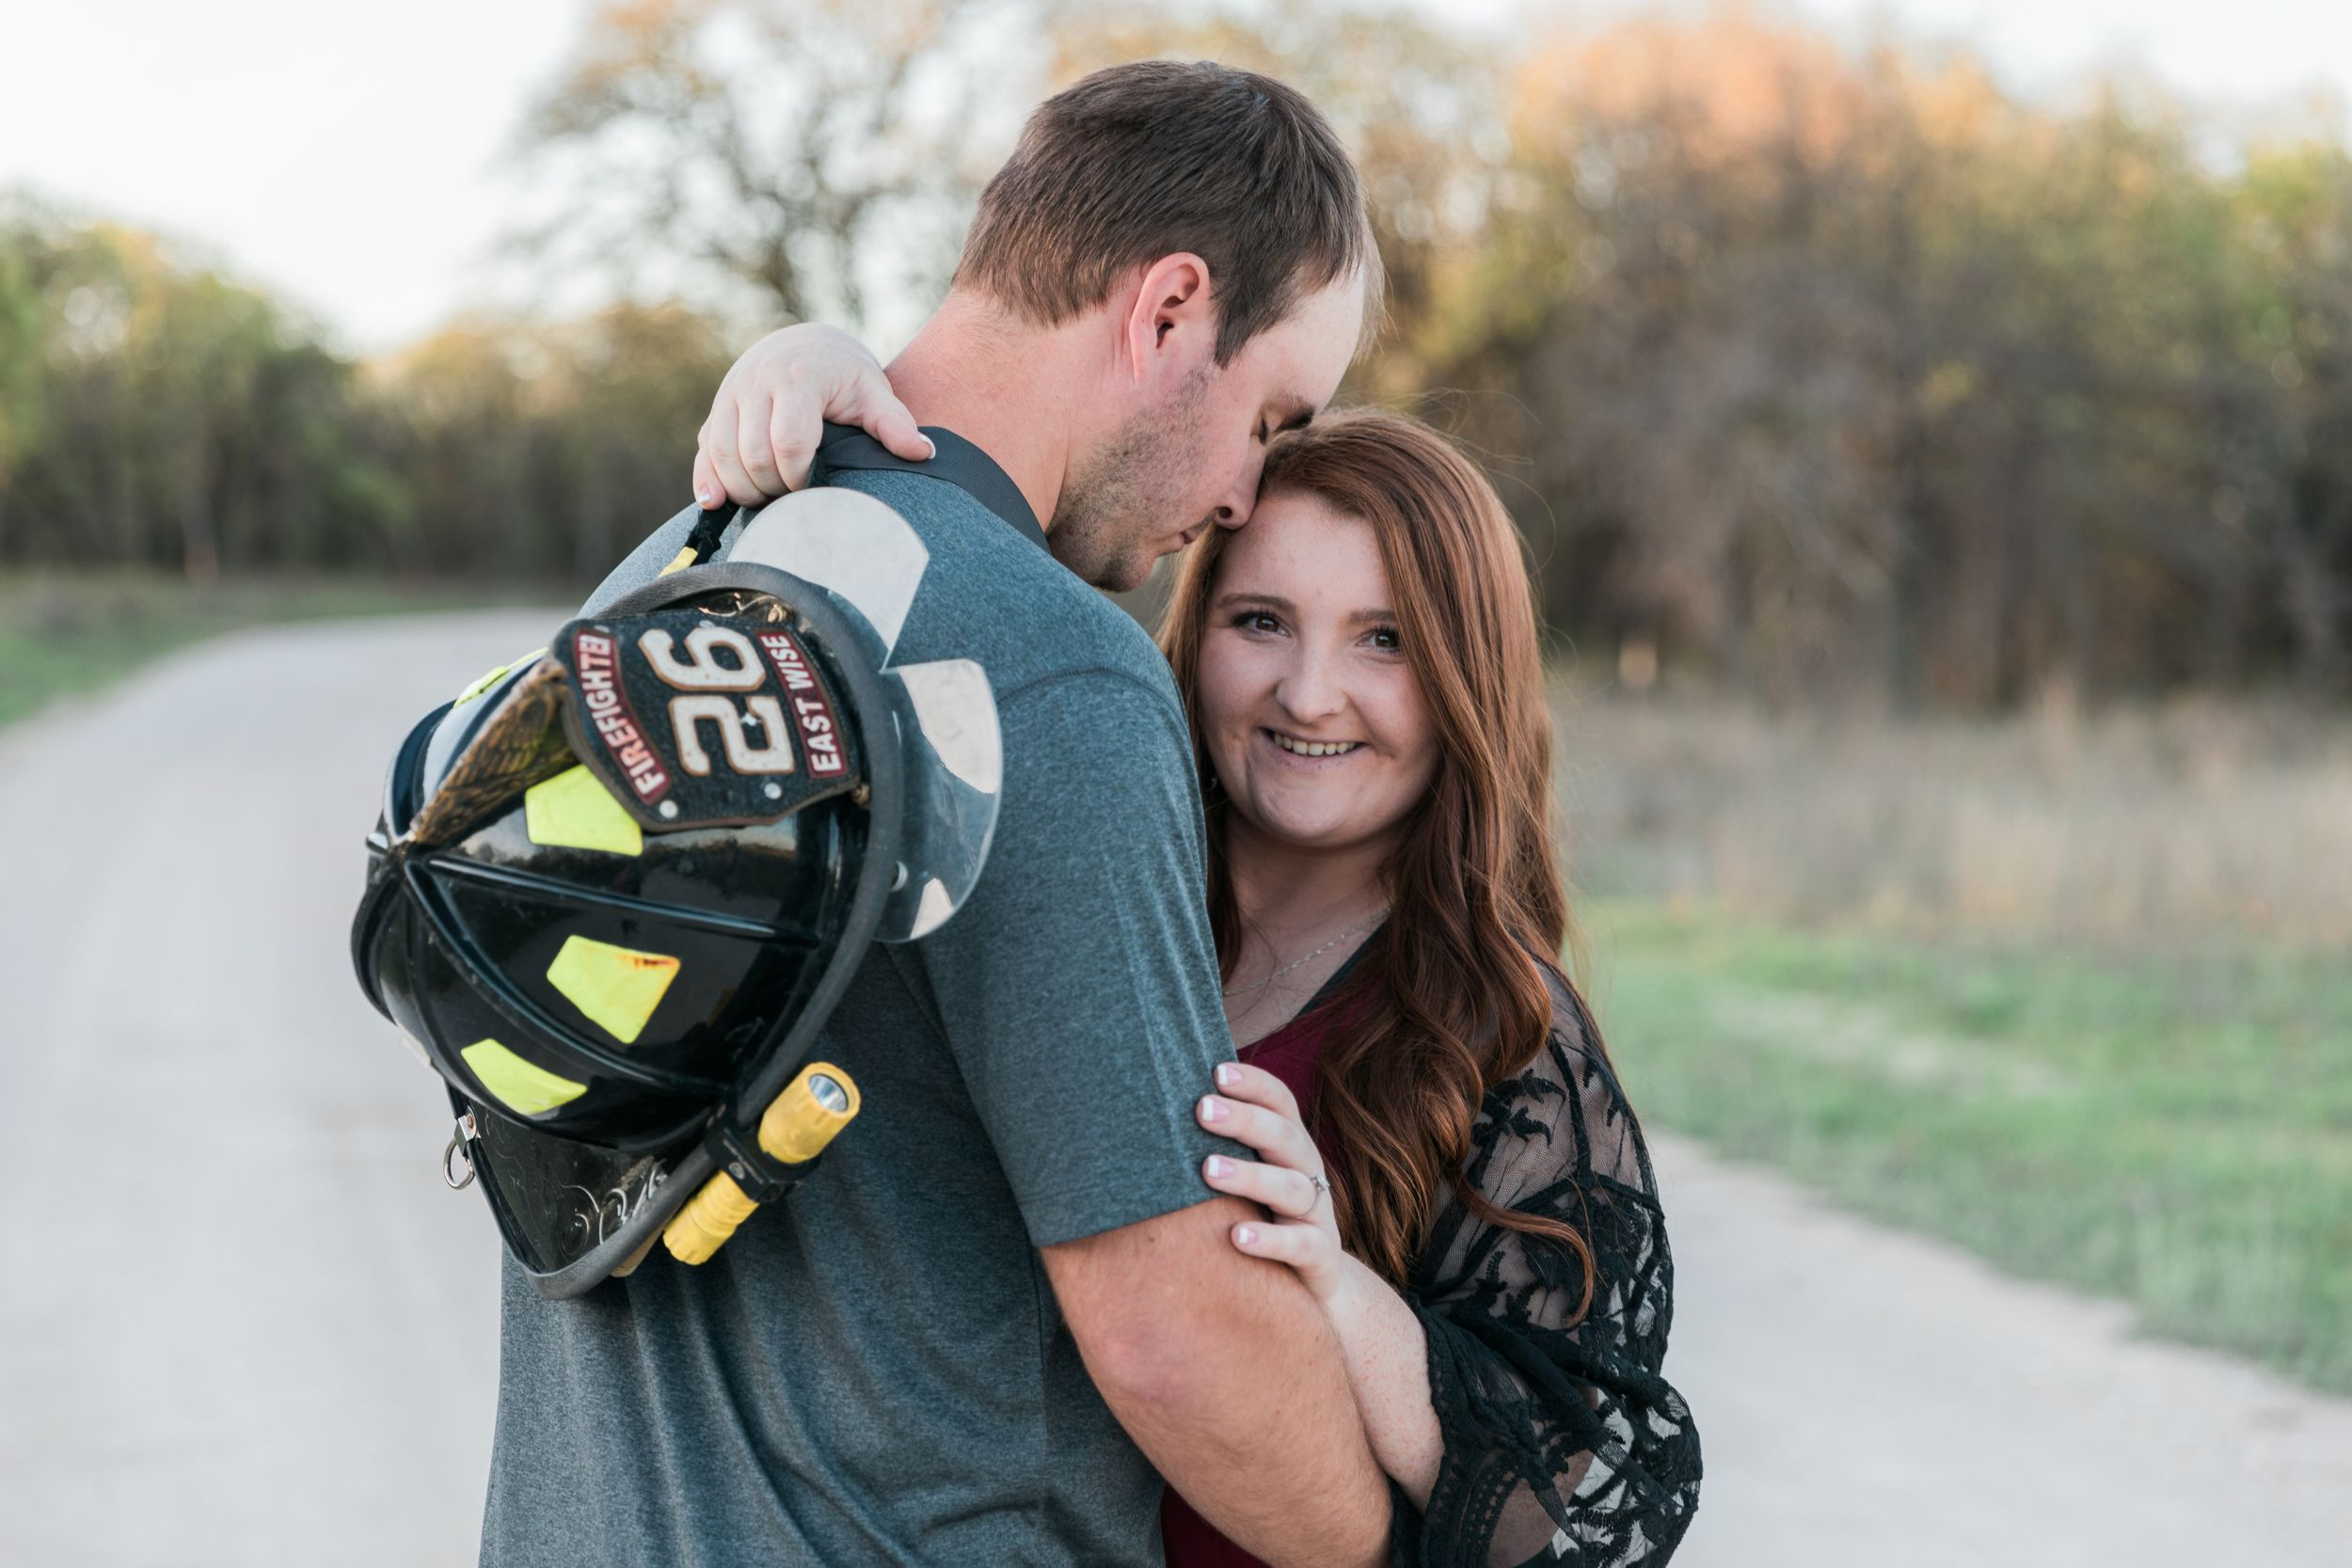 Firefighter-Texas-Spring-Engagement-Session-Decatur